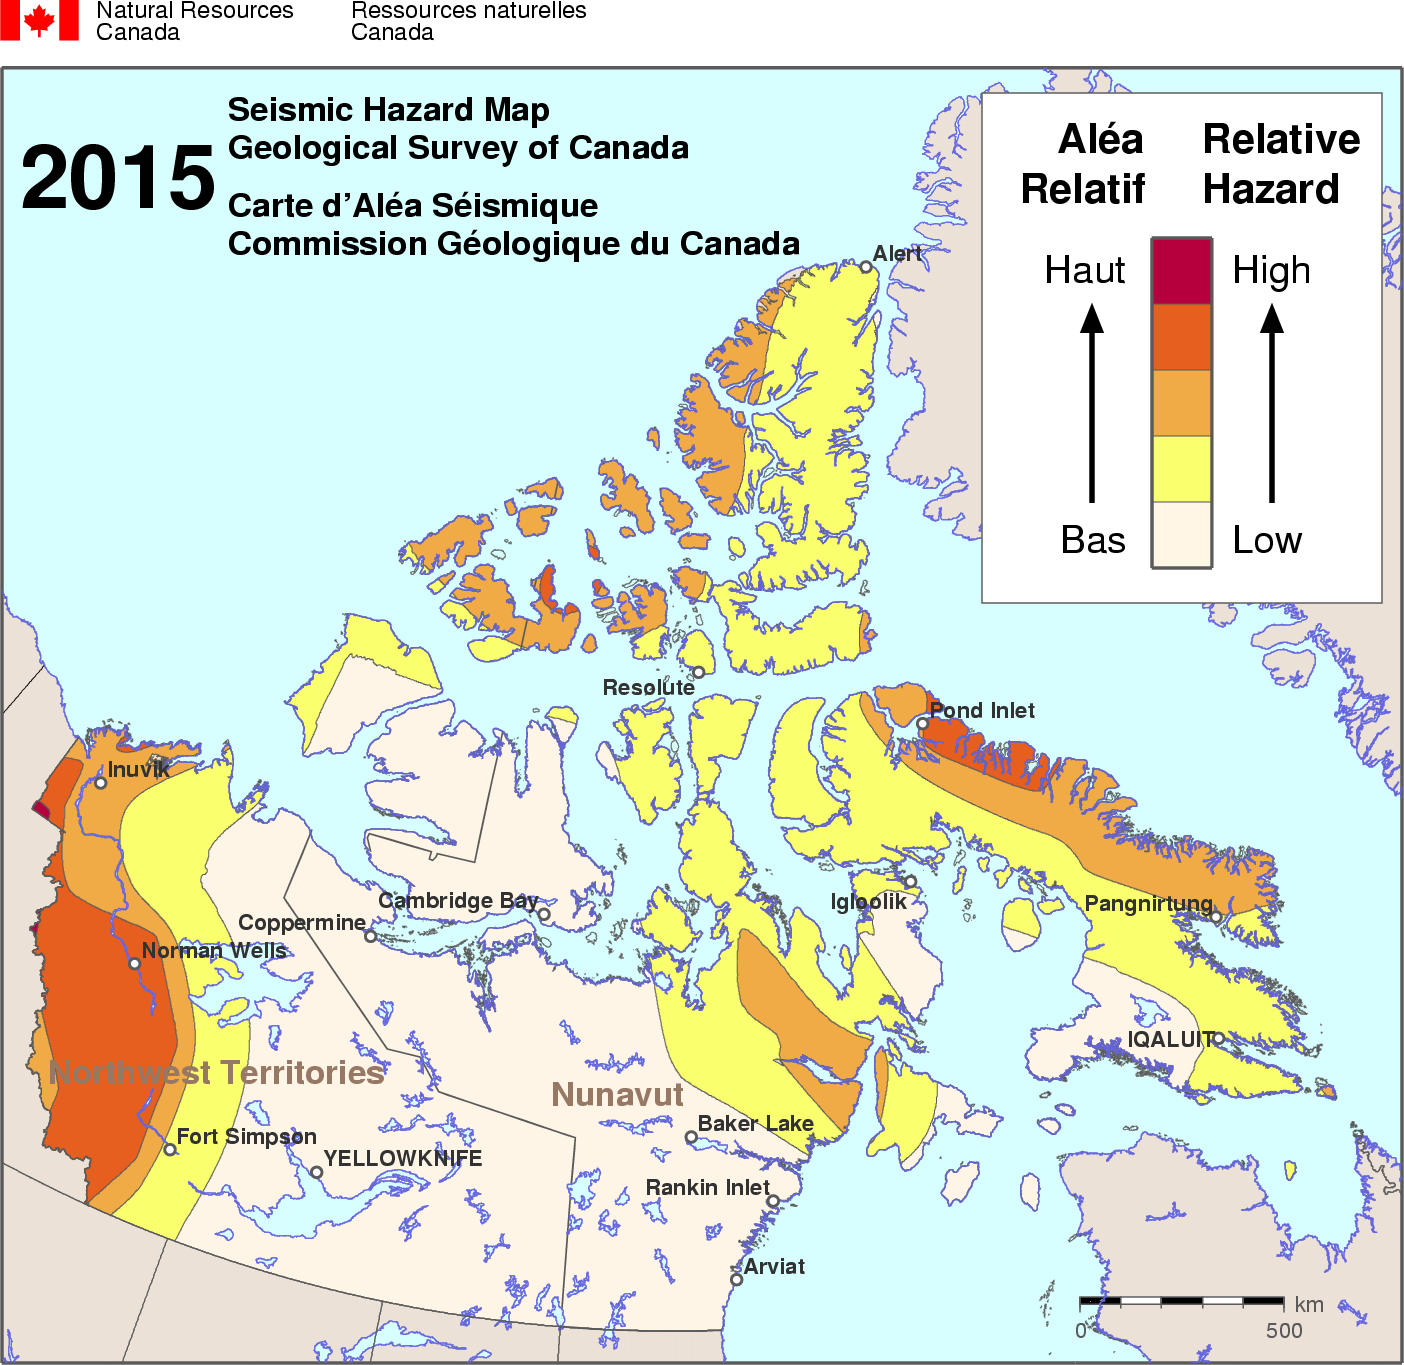 Canada Natural Disaster Map Simplified seismic hazard map for Canada, the provinces and